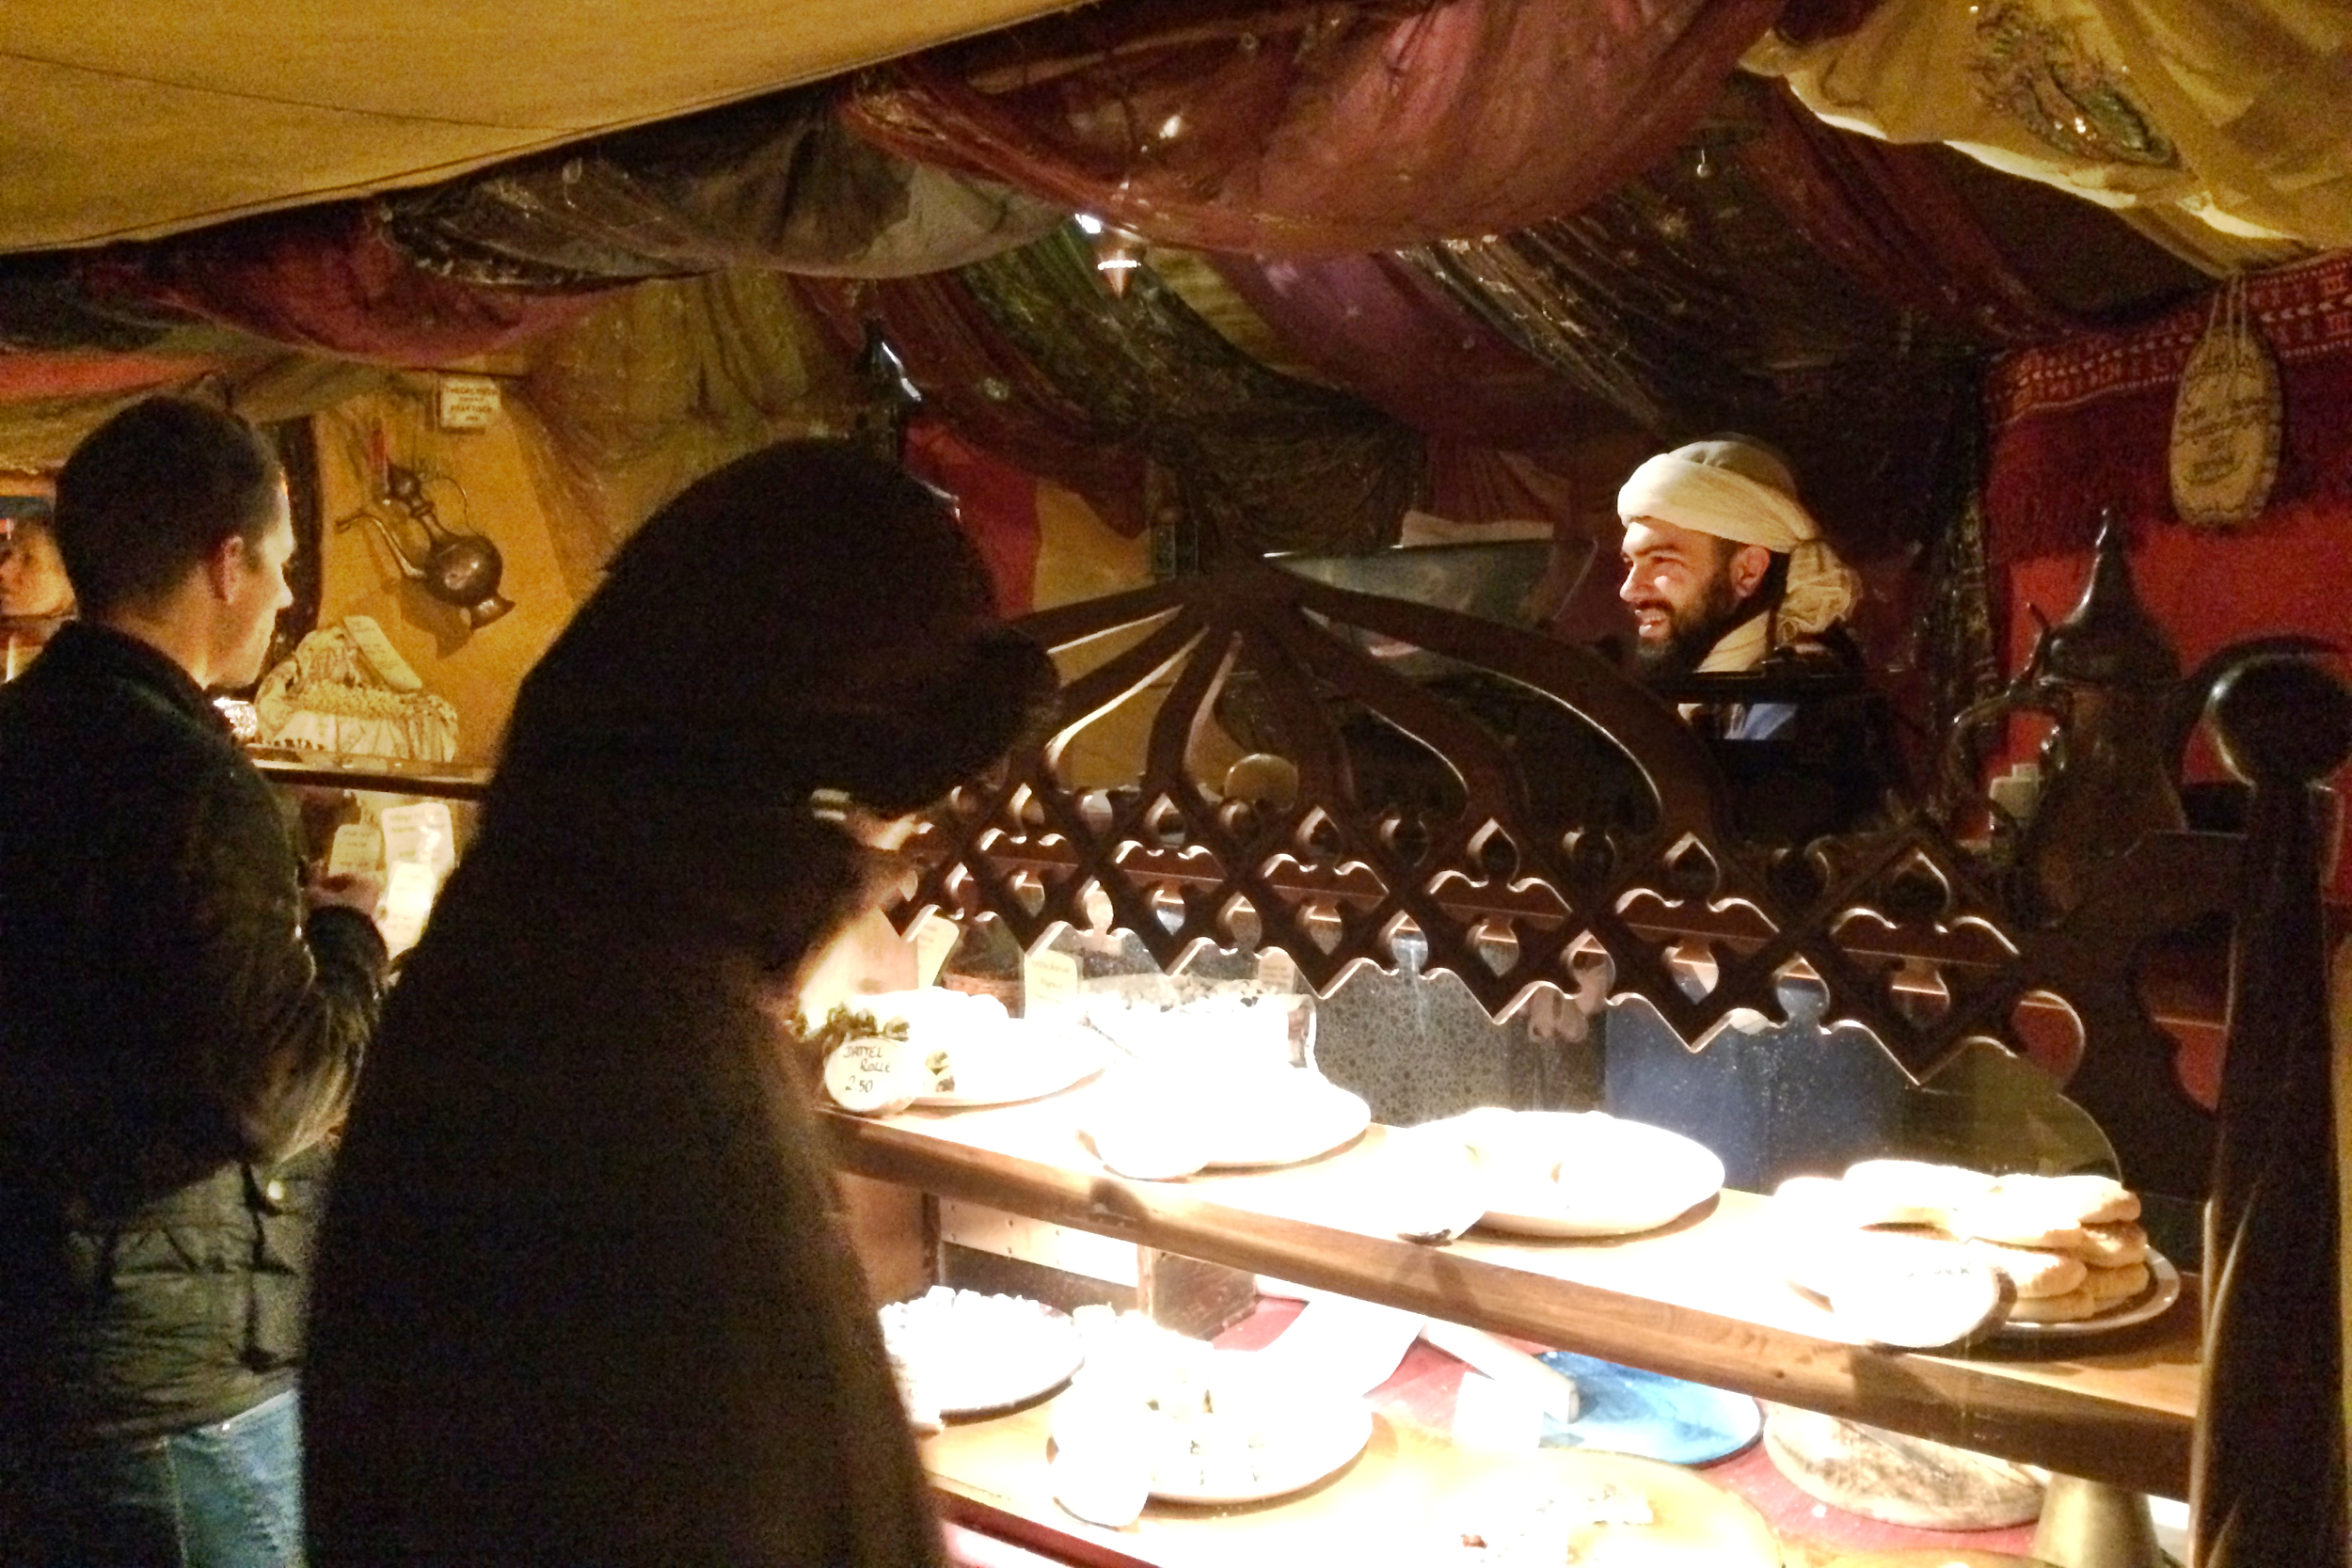 A neat middle eastern-themed tent.